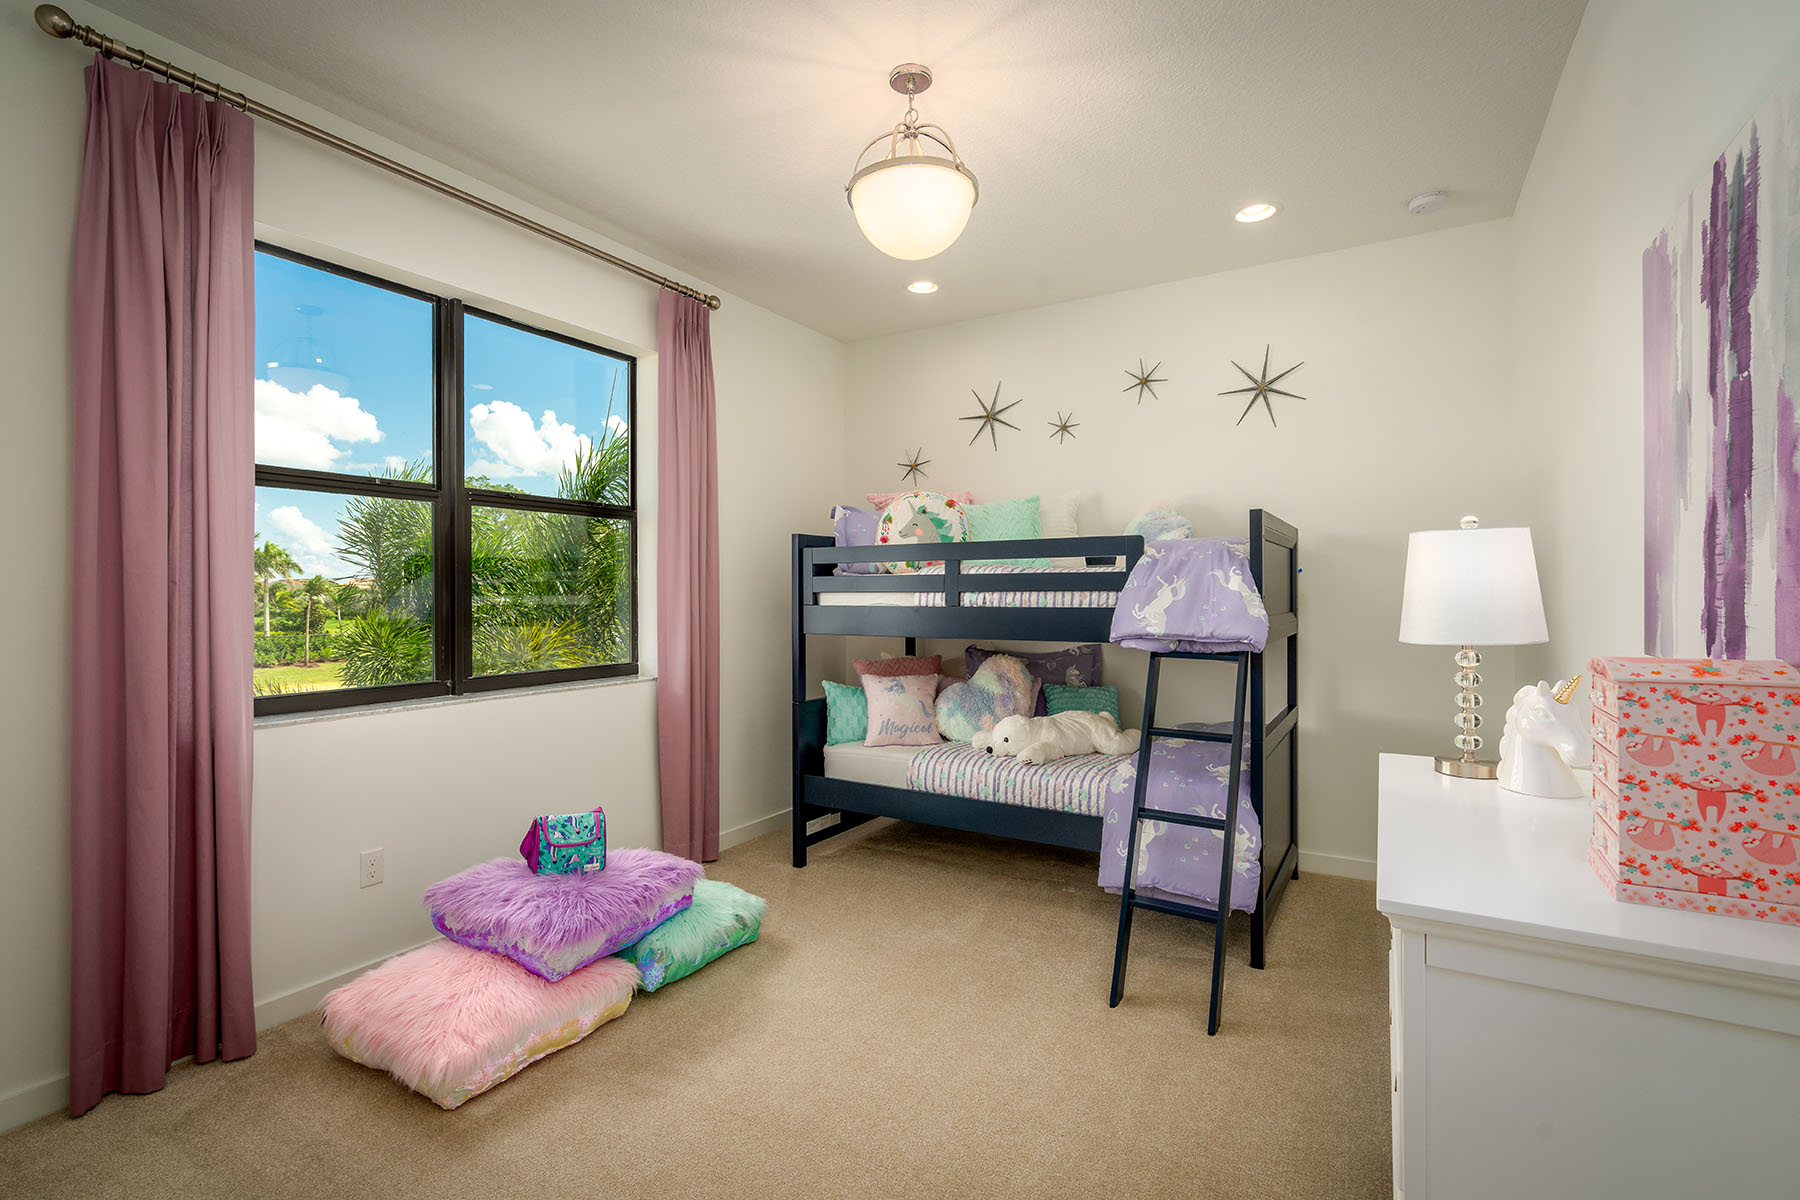 Sunbrooke Plan Bedroom at Saddlewood in Lake Worth Florida by Mattamy Homes